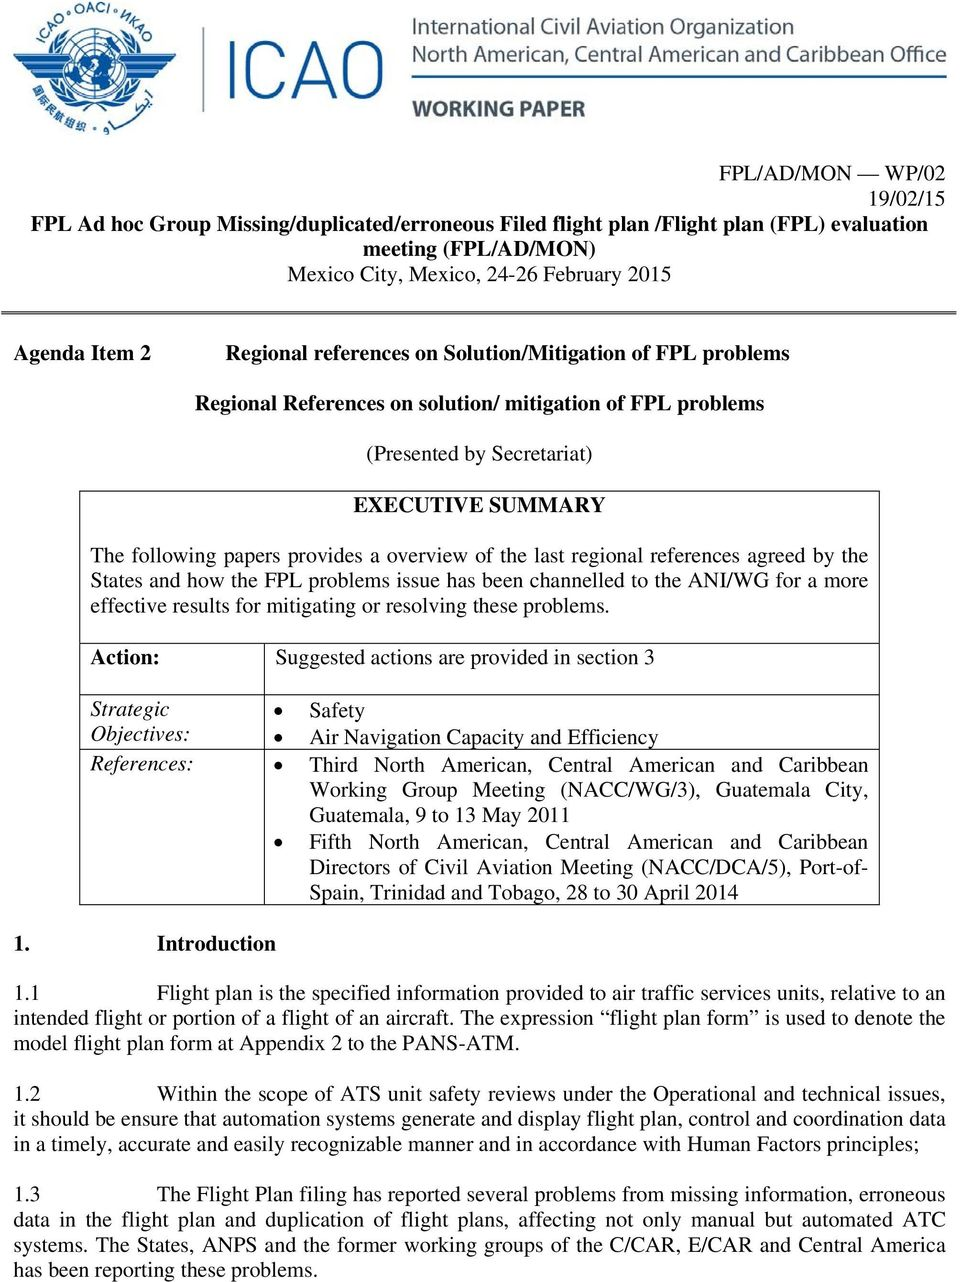 Regional References on solution/ mitigation of FPL problems